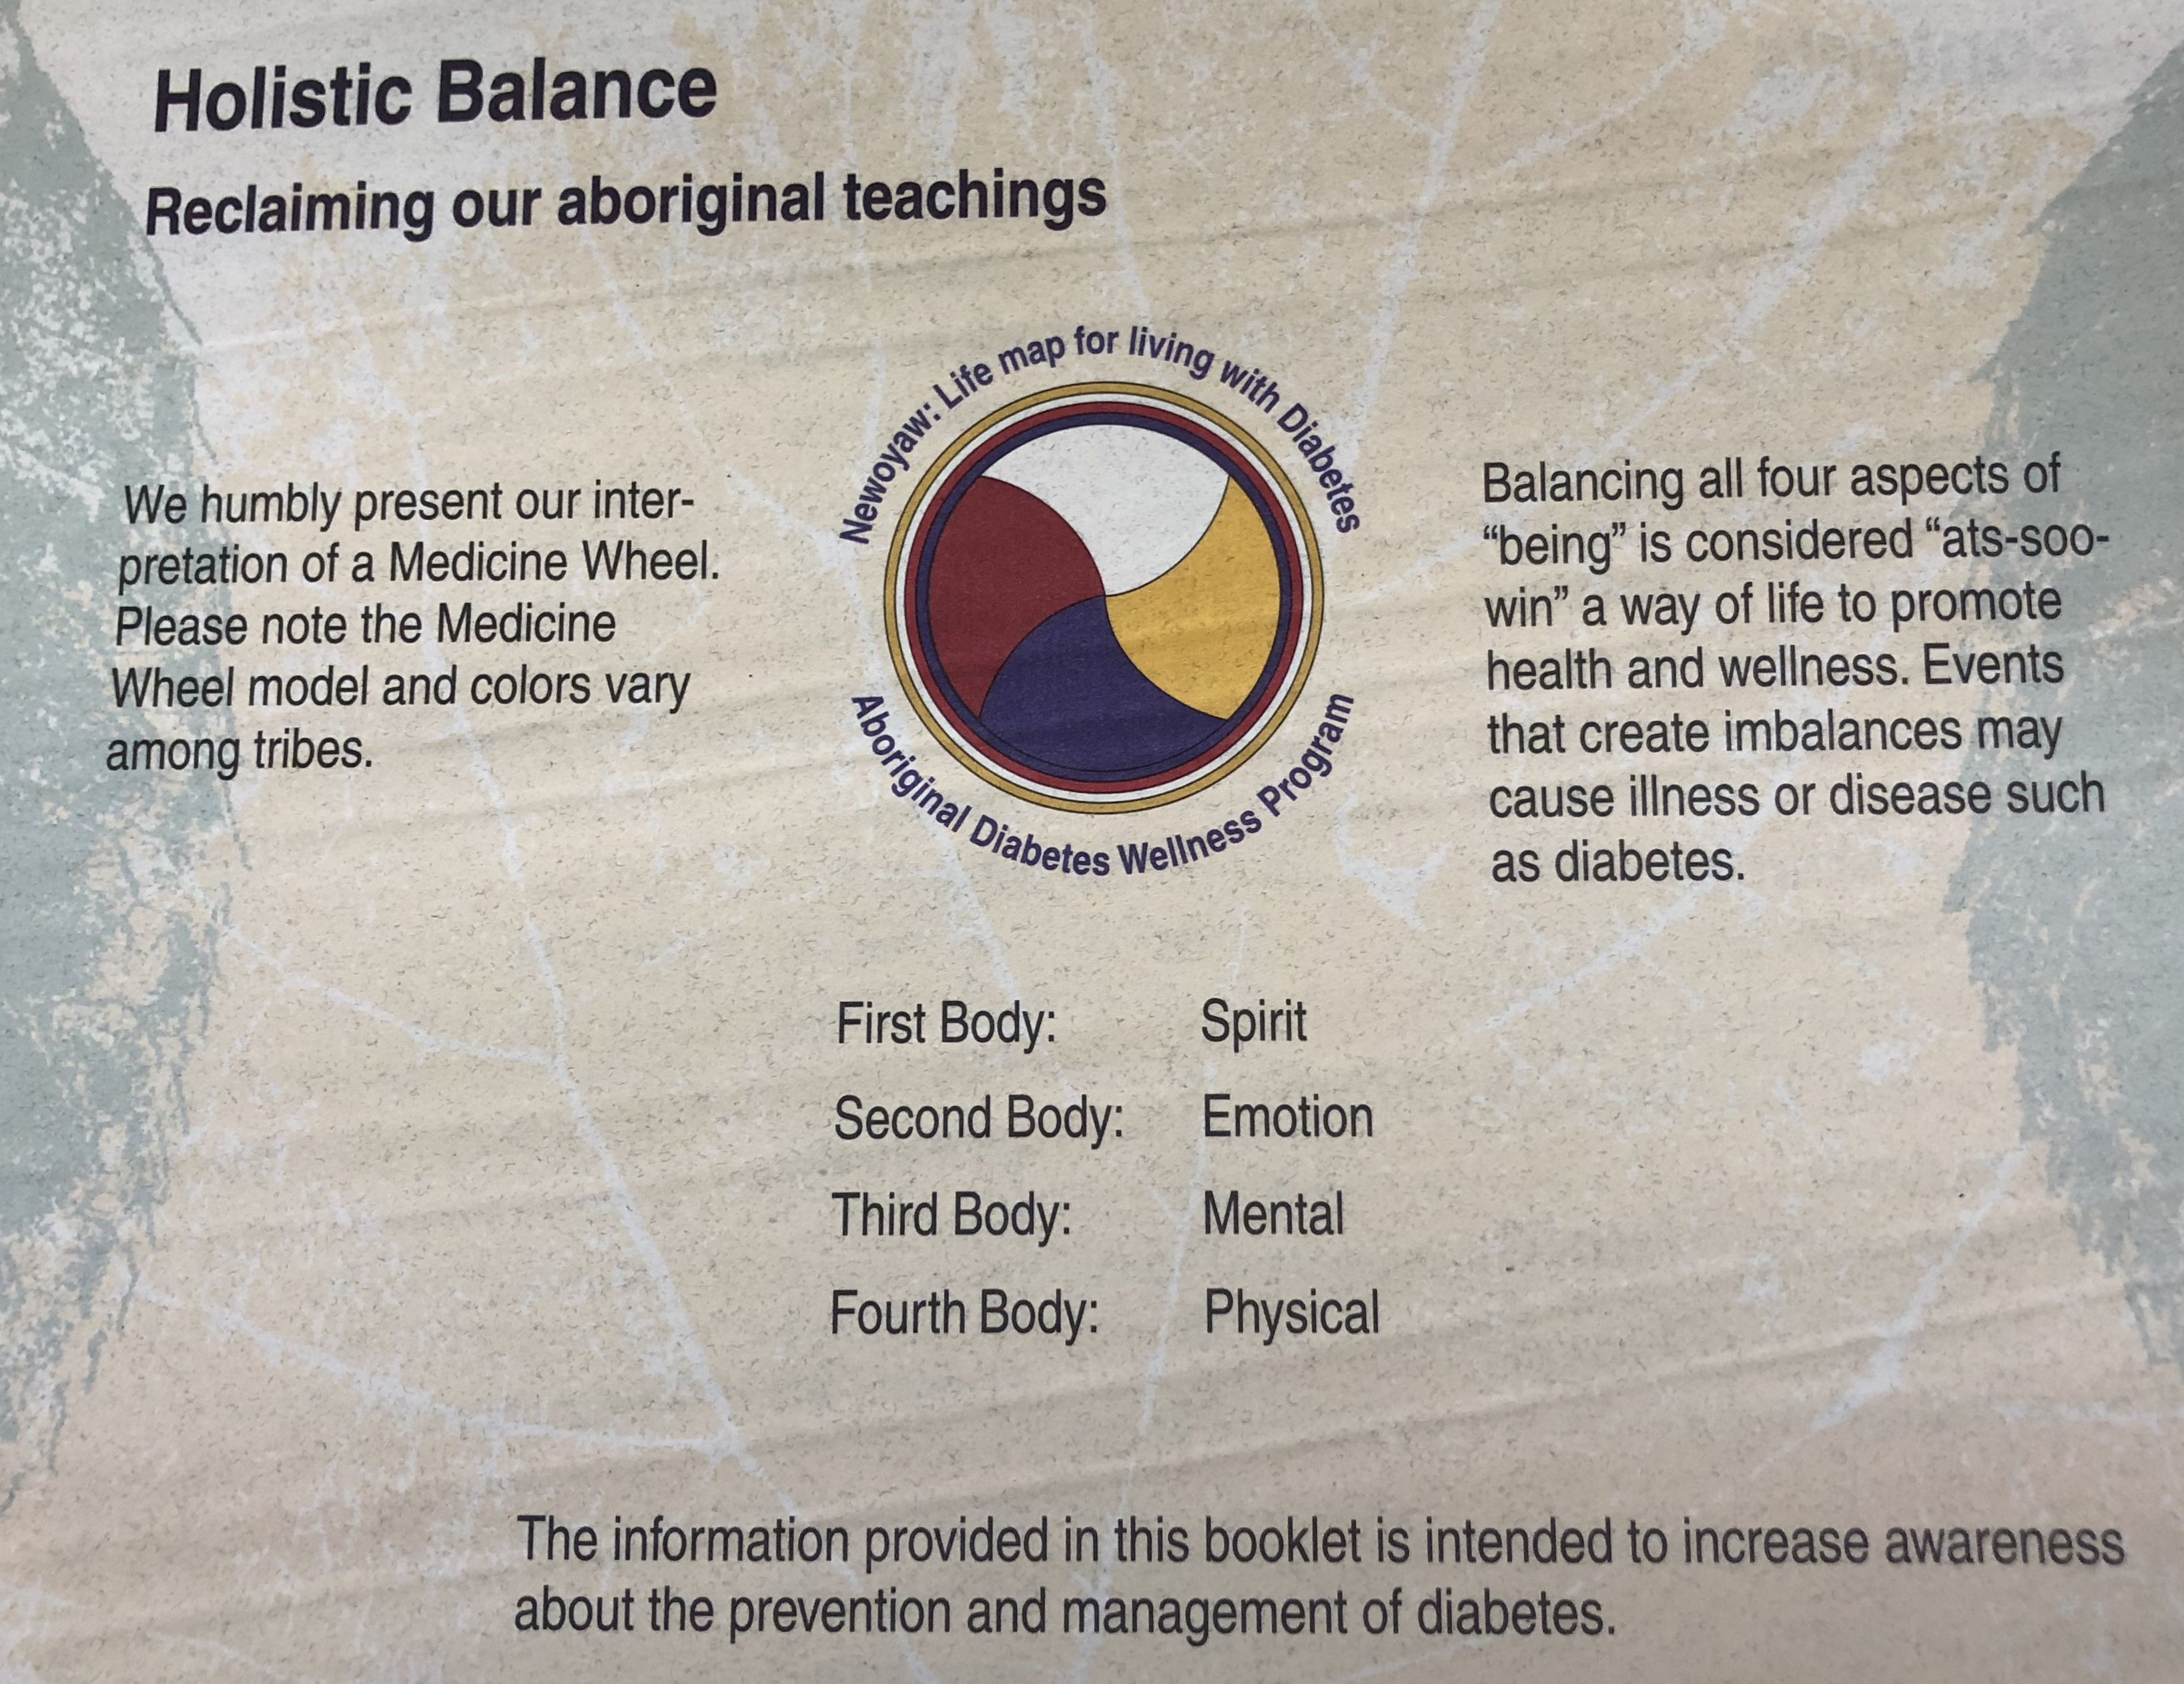 Reflecting on my Time at the Indigenous Wellness Clinic